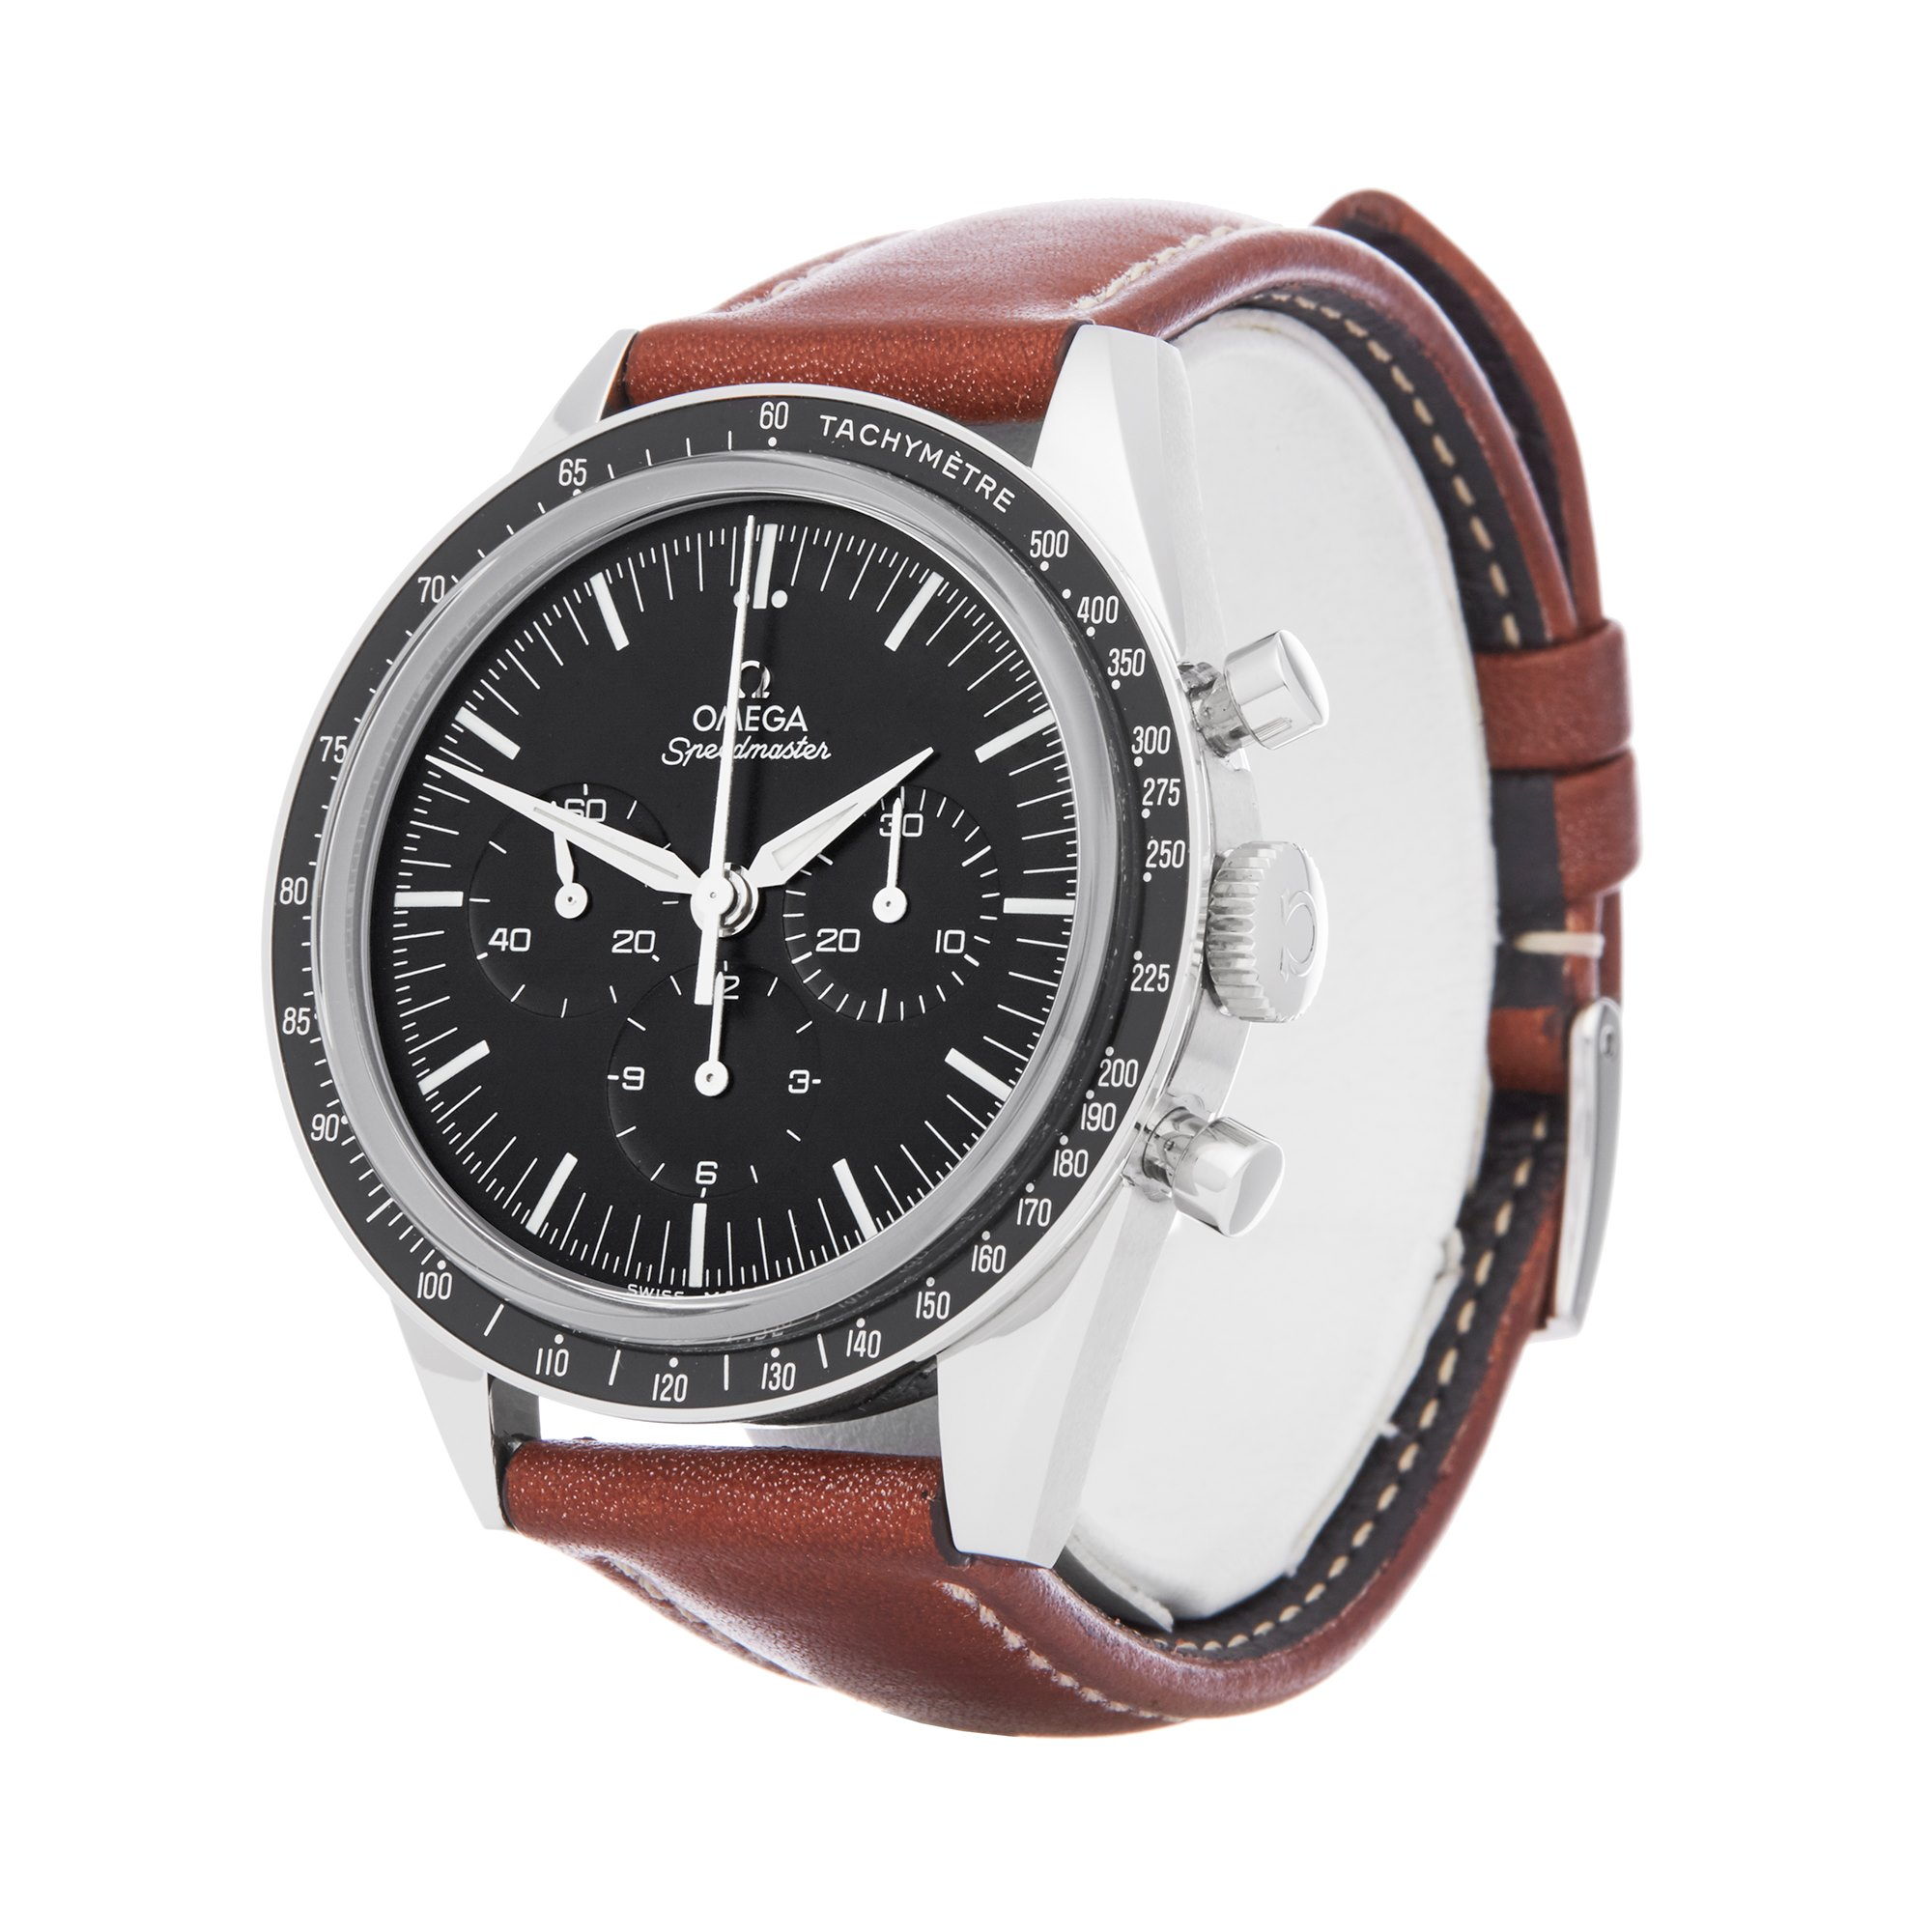 Omega Speedmaster No.6327 Chronograph Moonwatch Numbered Edition Stainless Steel 311.31.40.30.01.001